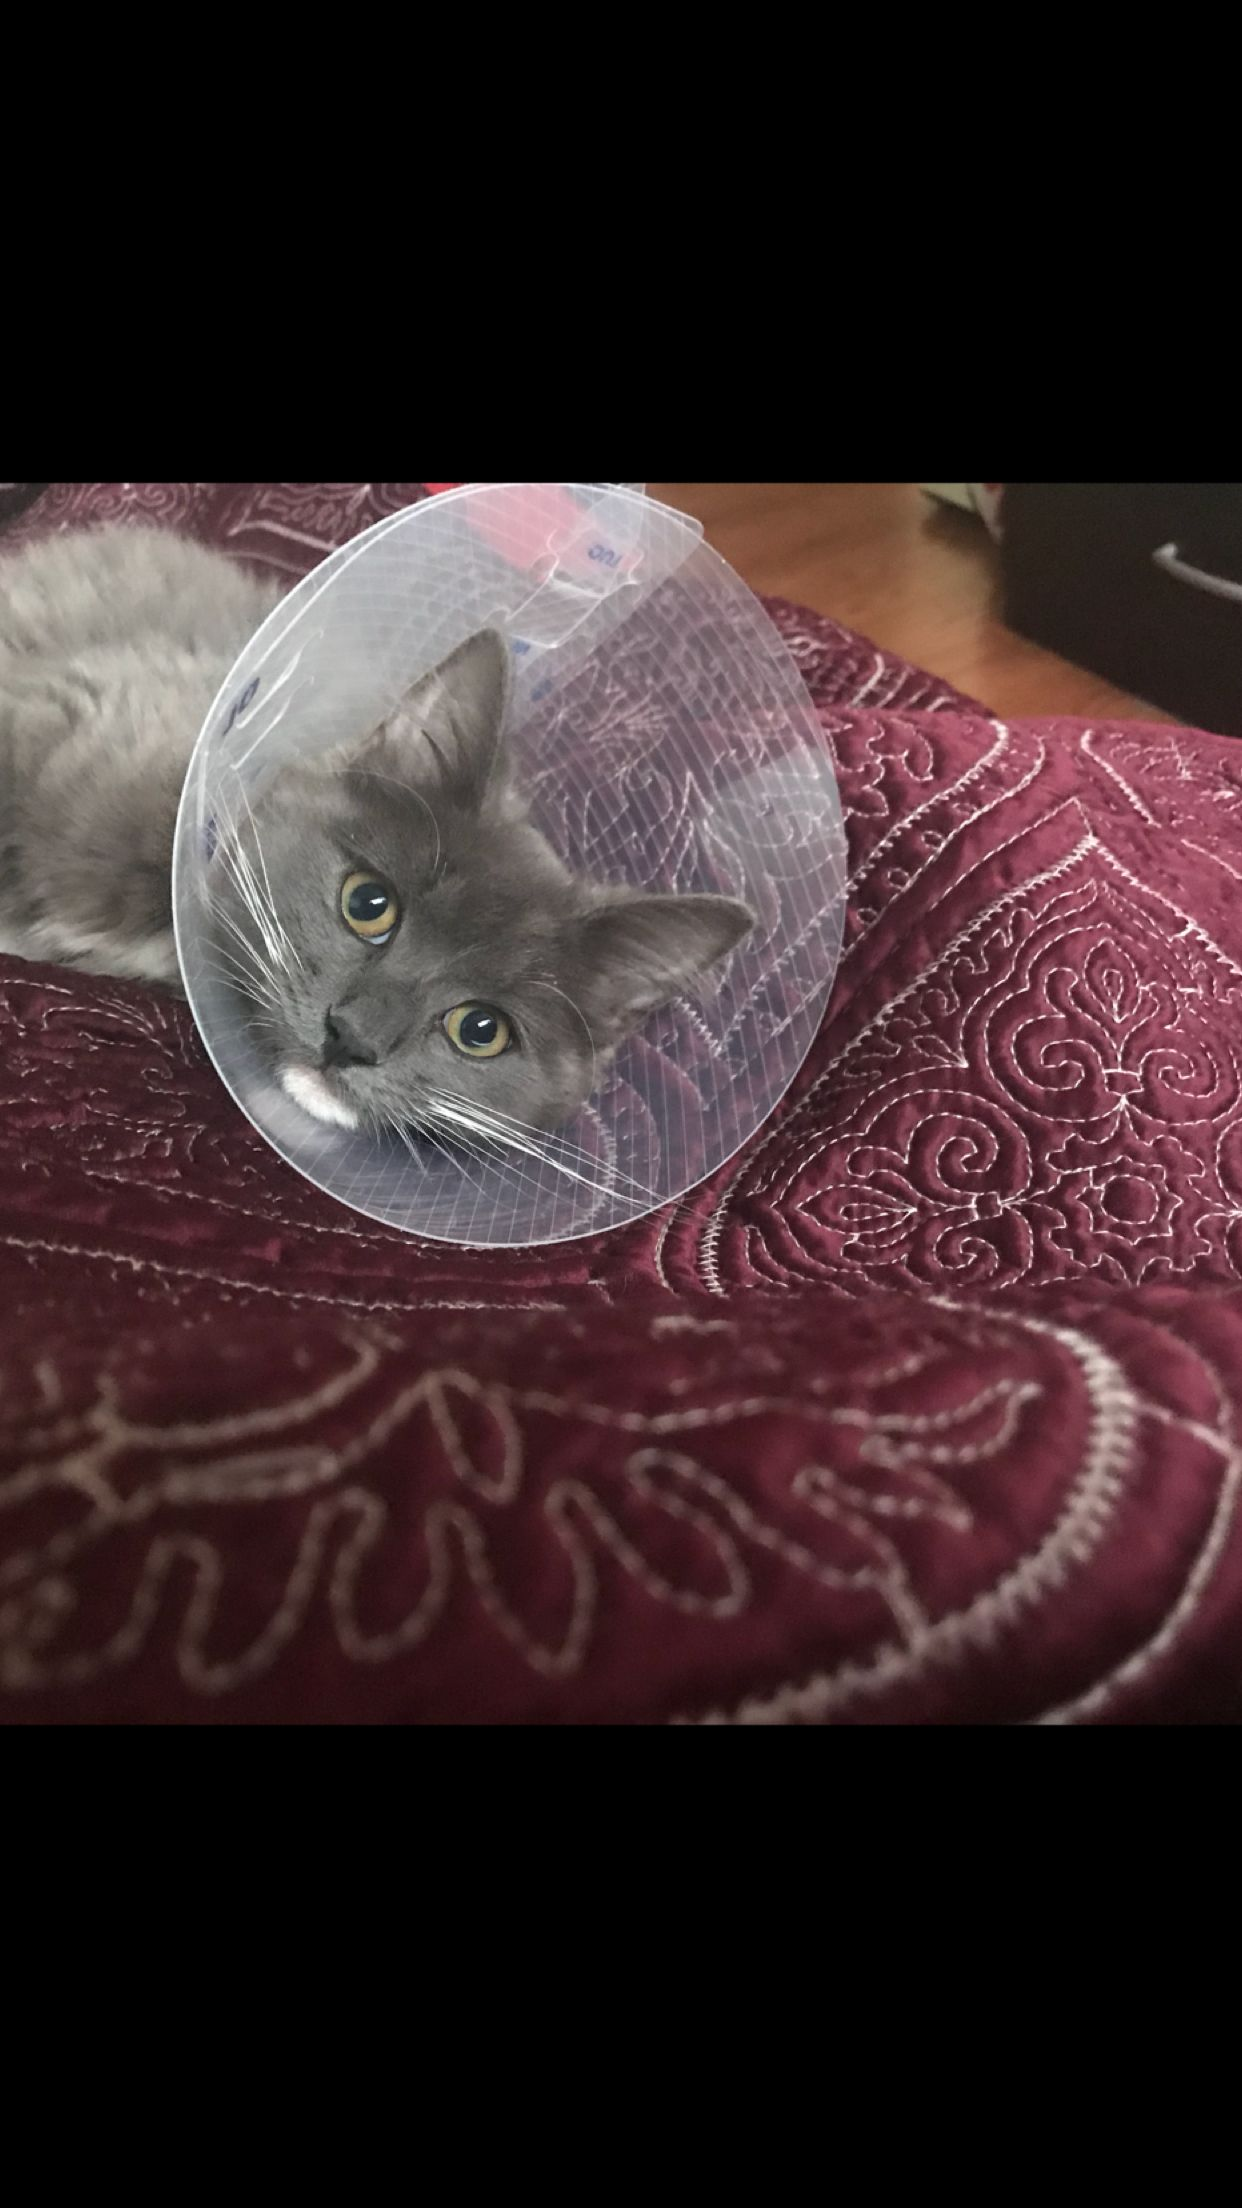 Lola Wearing Her Cone Celestial Bodies Kitty Cats